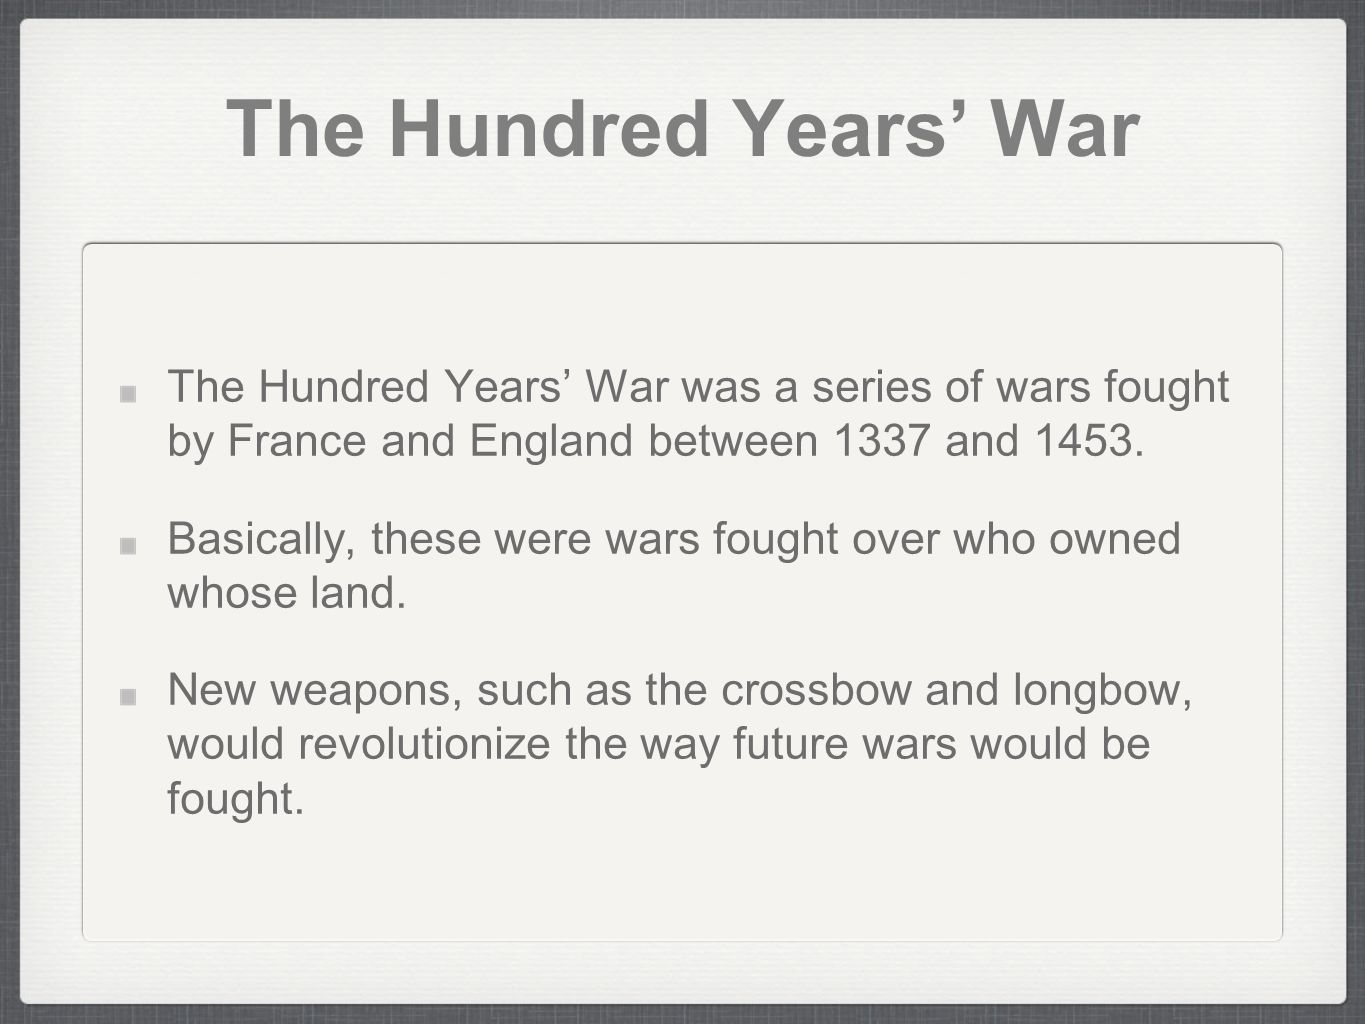 The Hundred Years' War The Hundred Years' War was a series of wars fought by France and England between 1337 and 1453.